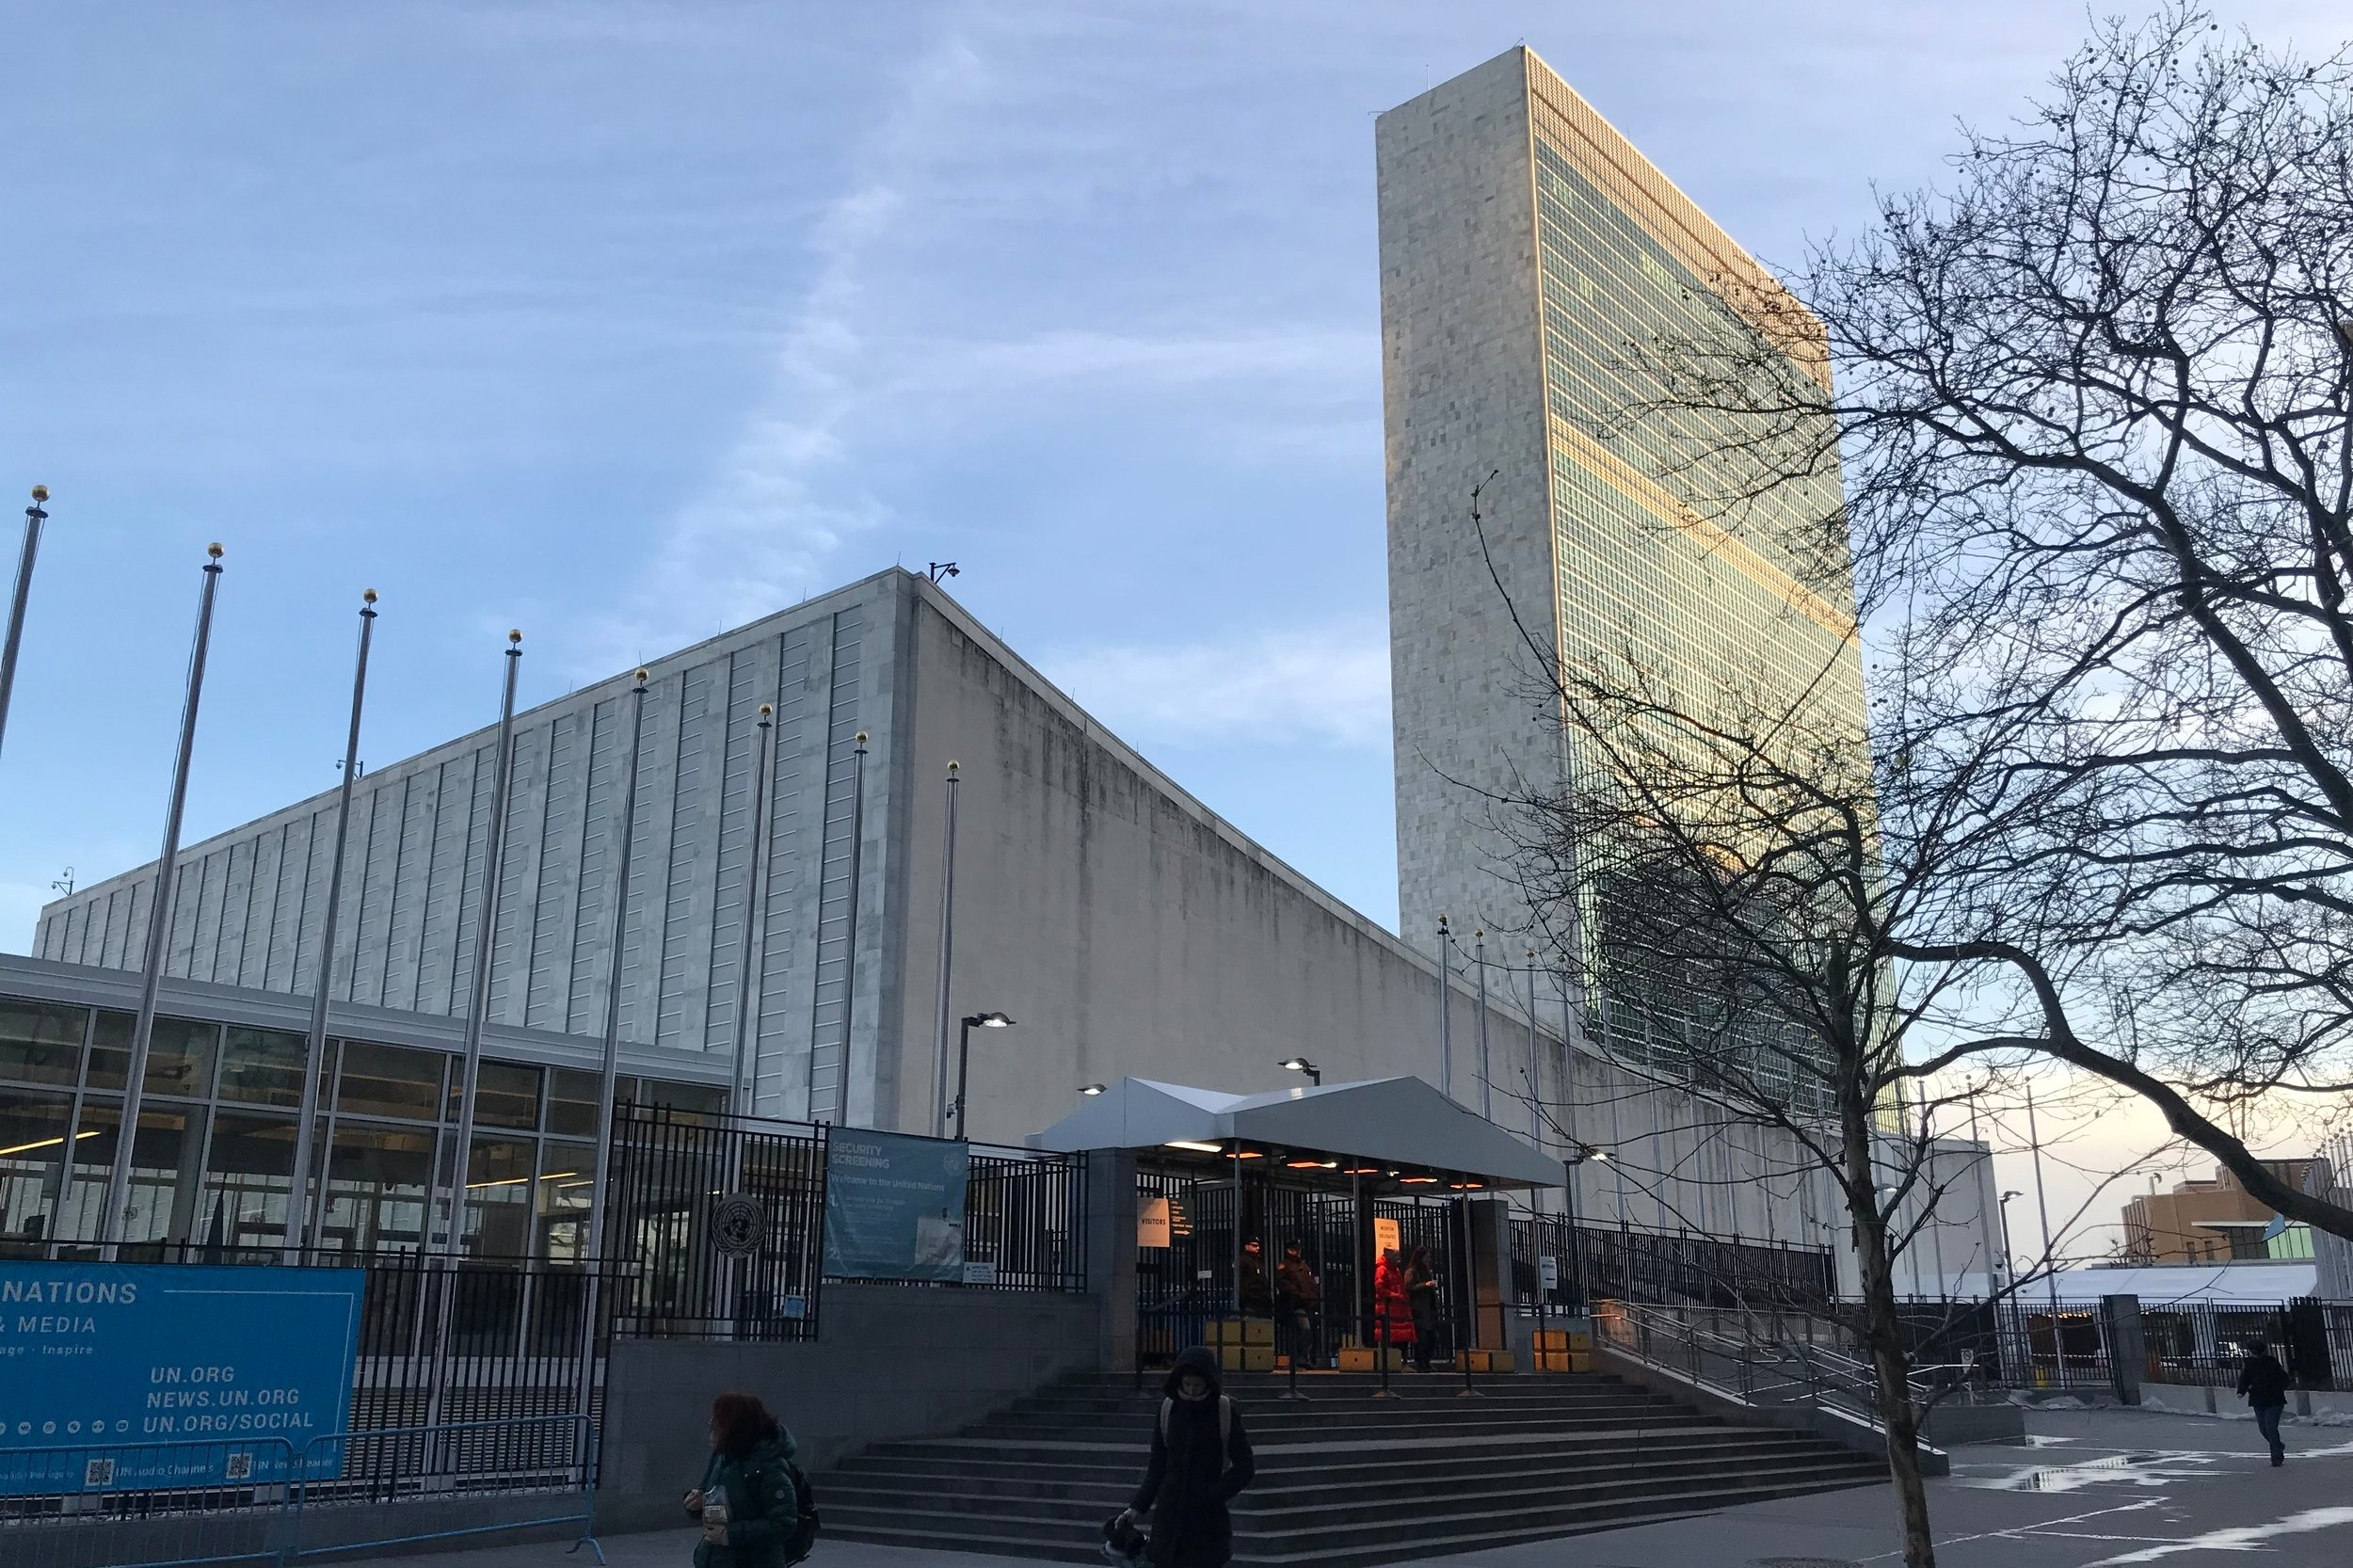 UN CSocD: Increasing Transparency in the Fashion Industry - February 14, 2019